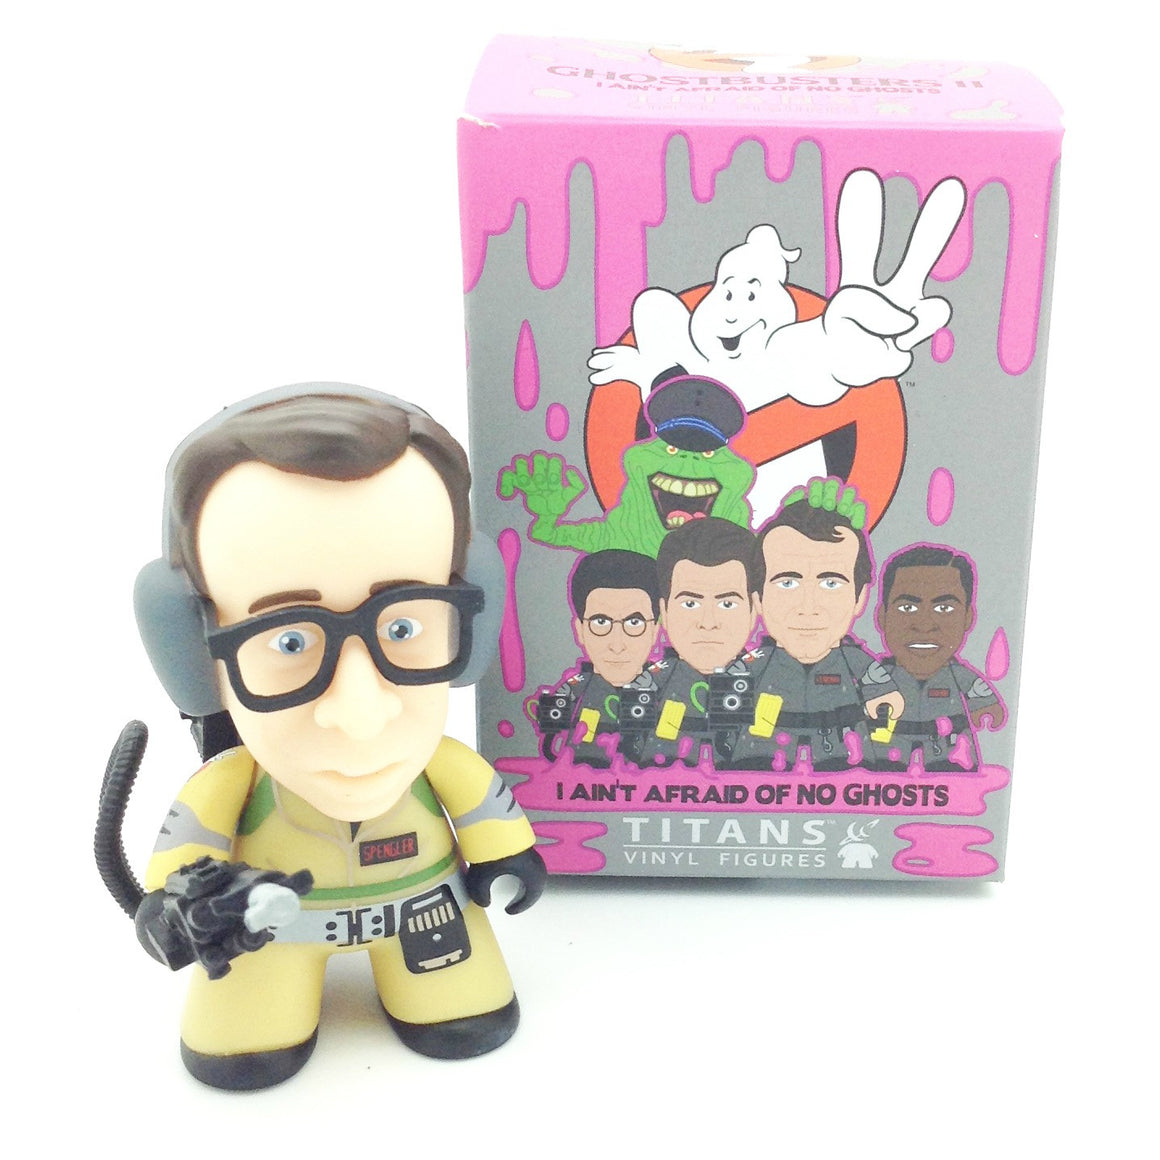 Ghostbusters 2 I Ain't Afraid Of No Ghosts Blind Box Collection - Tully